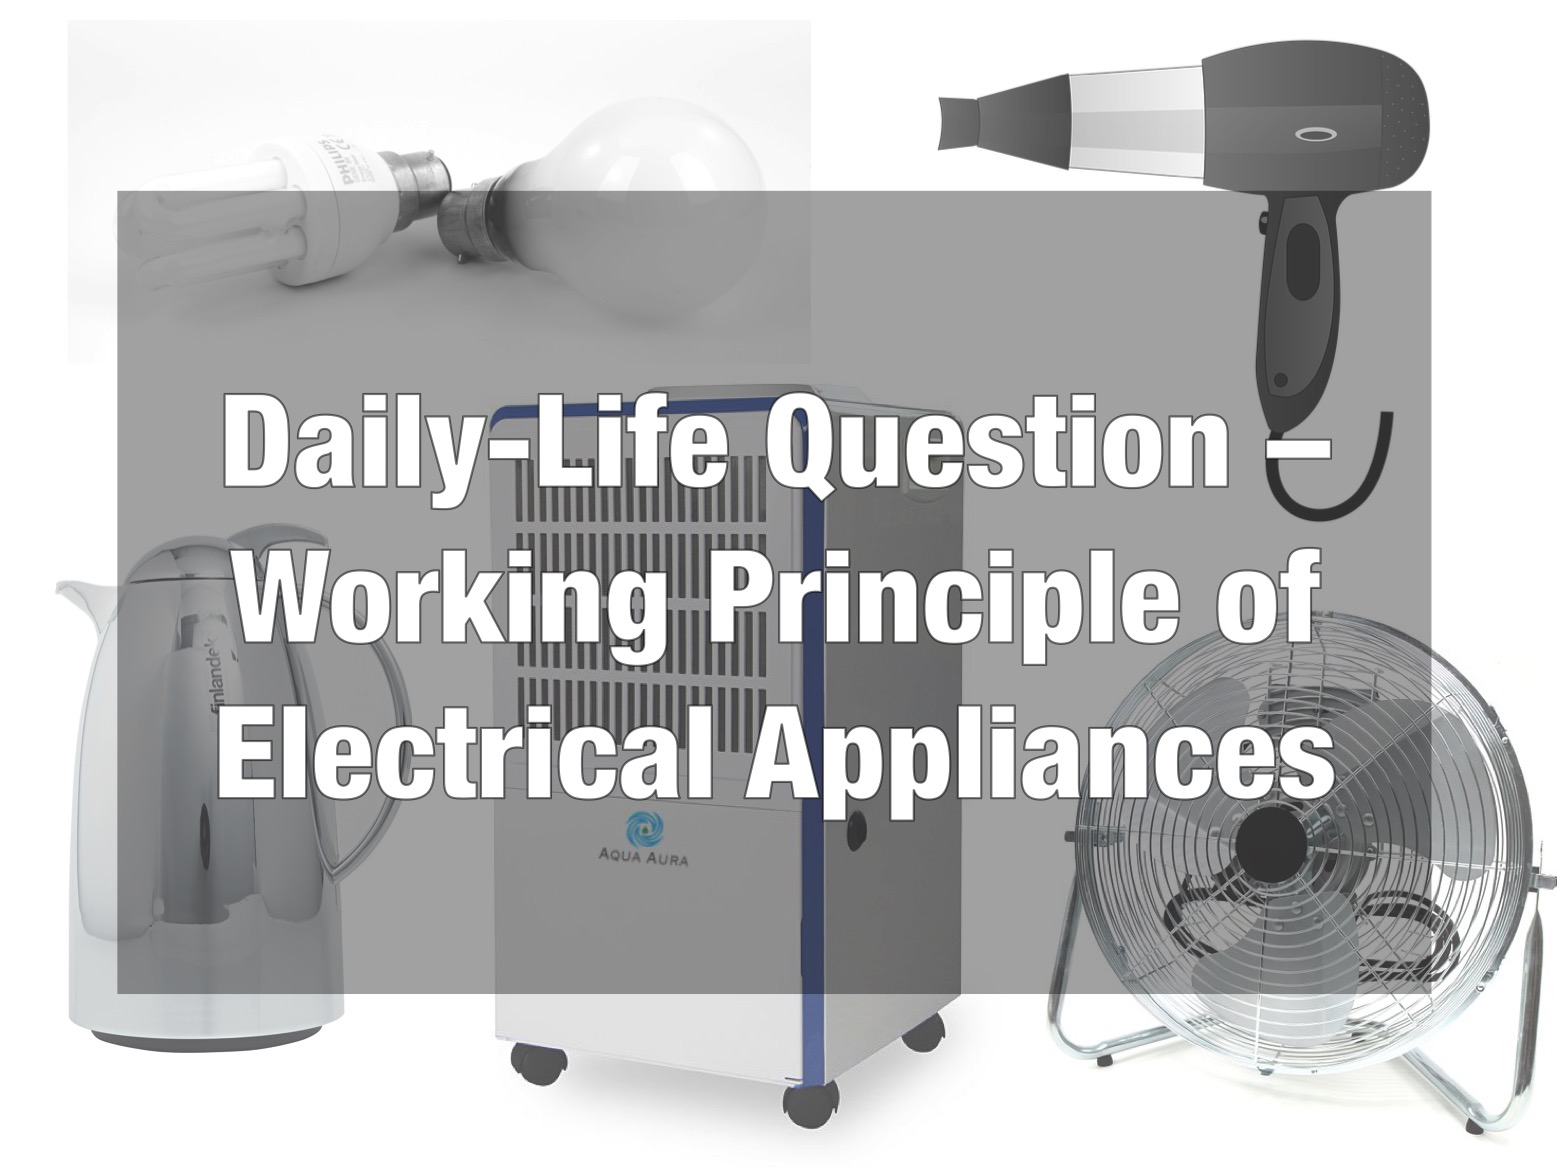 Electric Iron Working Principle ~ Daily life question working principle of electrical